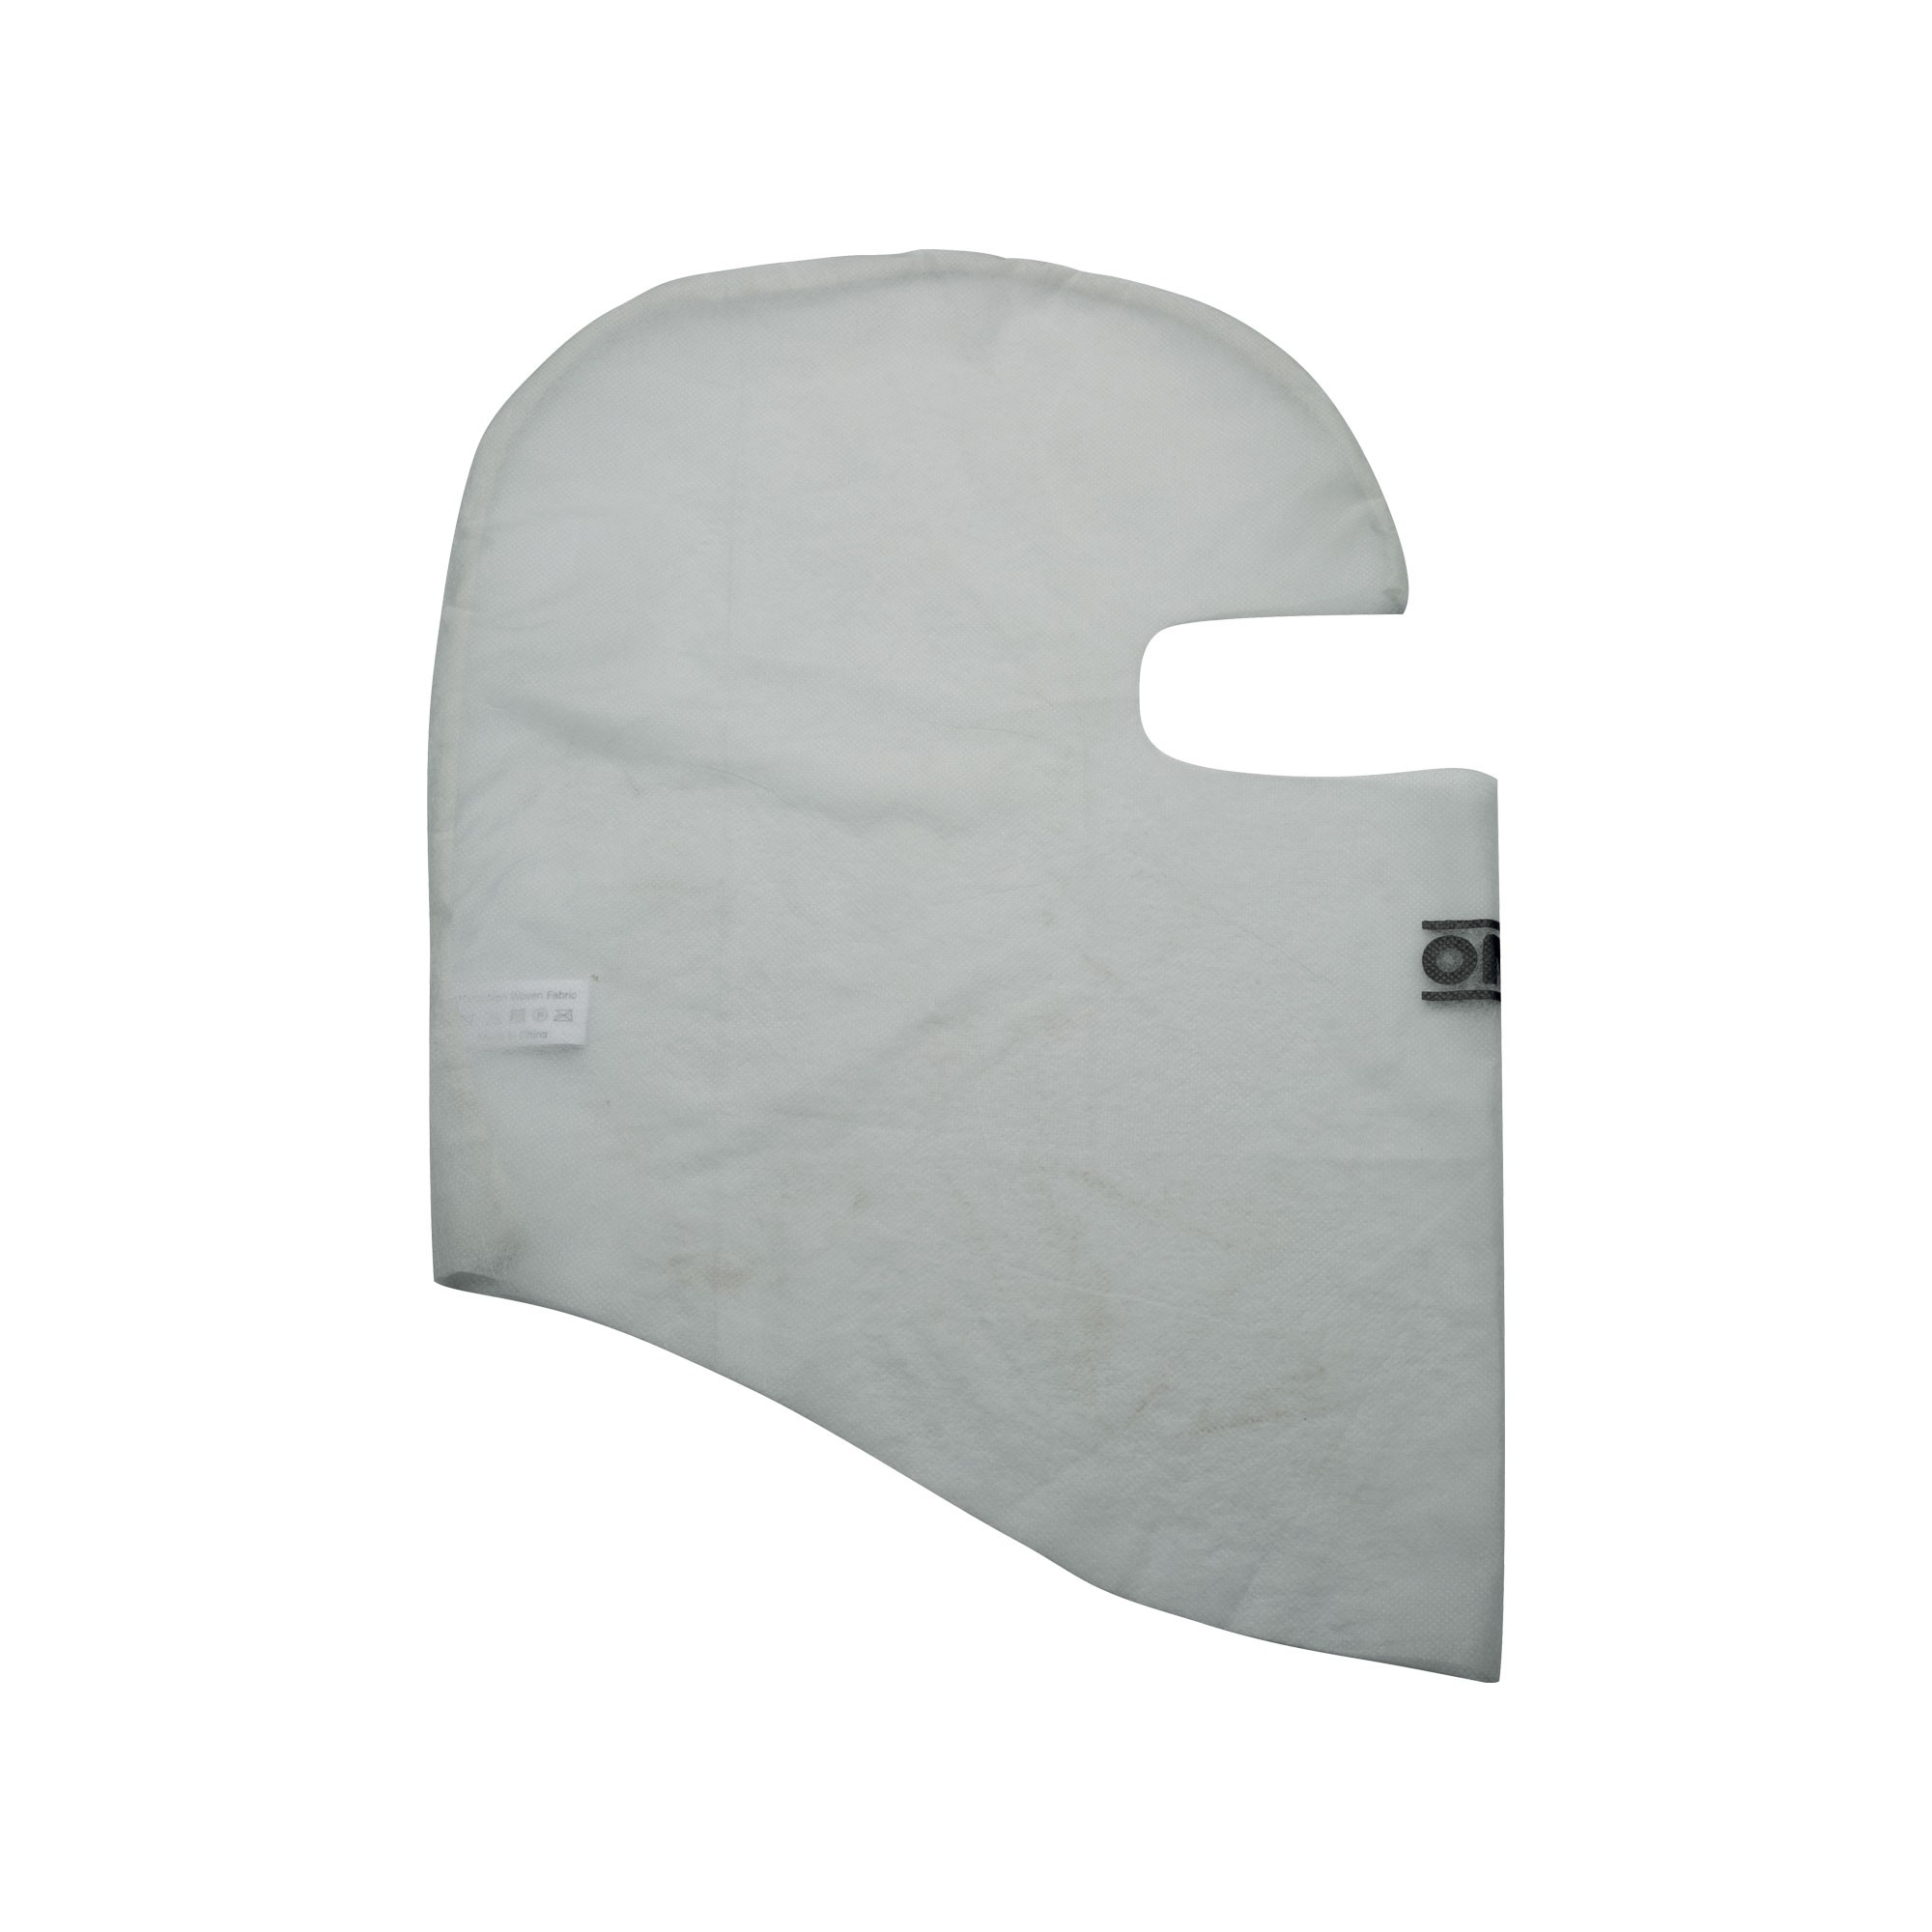 BALACLAVA WHITE ONE SIZE TISSUE TNT BAGS 25 PIECES